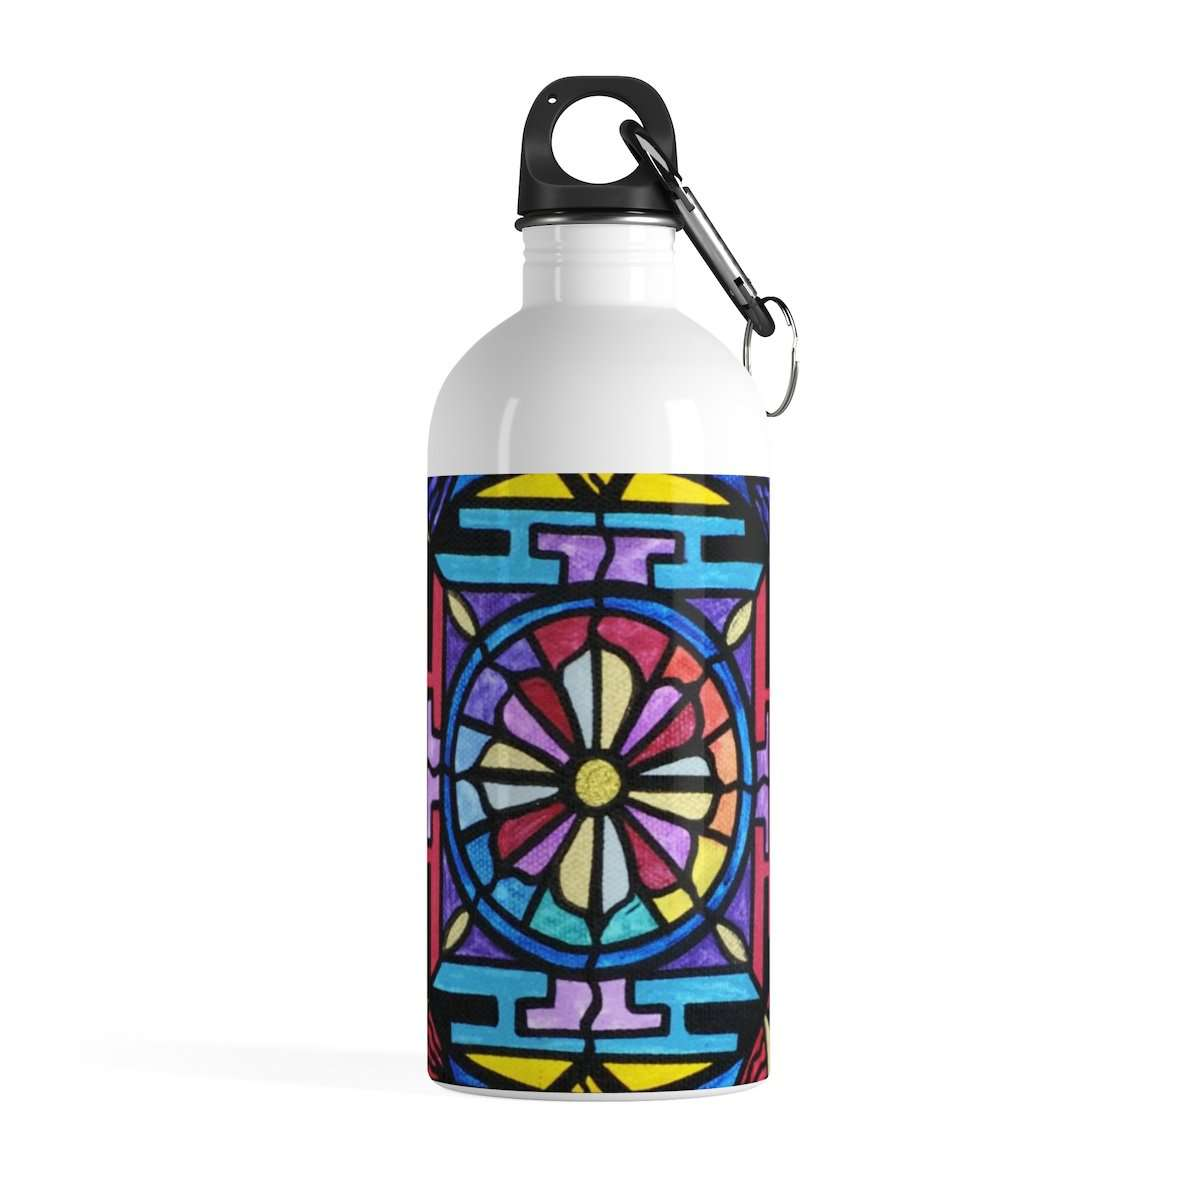 Opulence - Stainless Steel Water Bottle